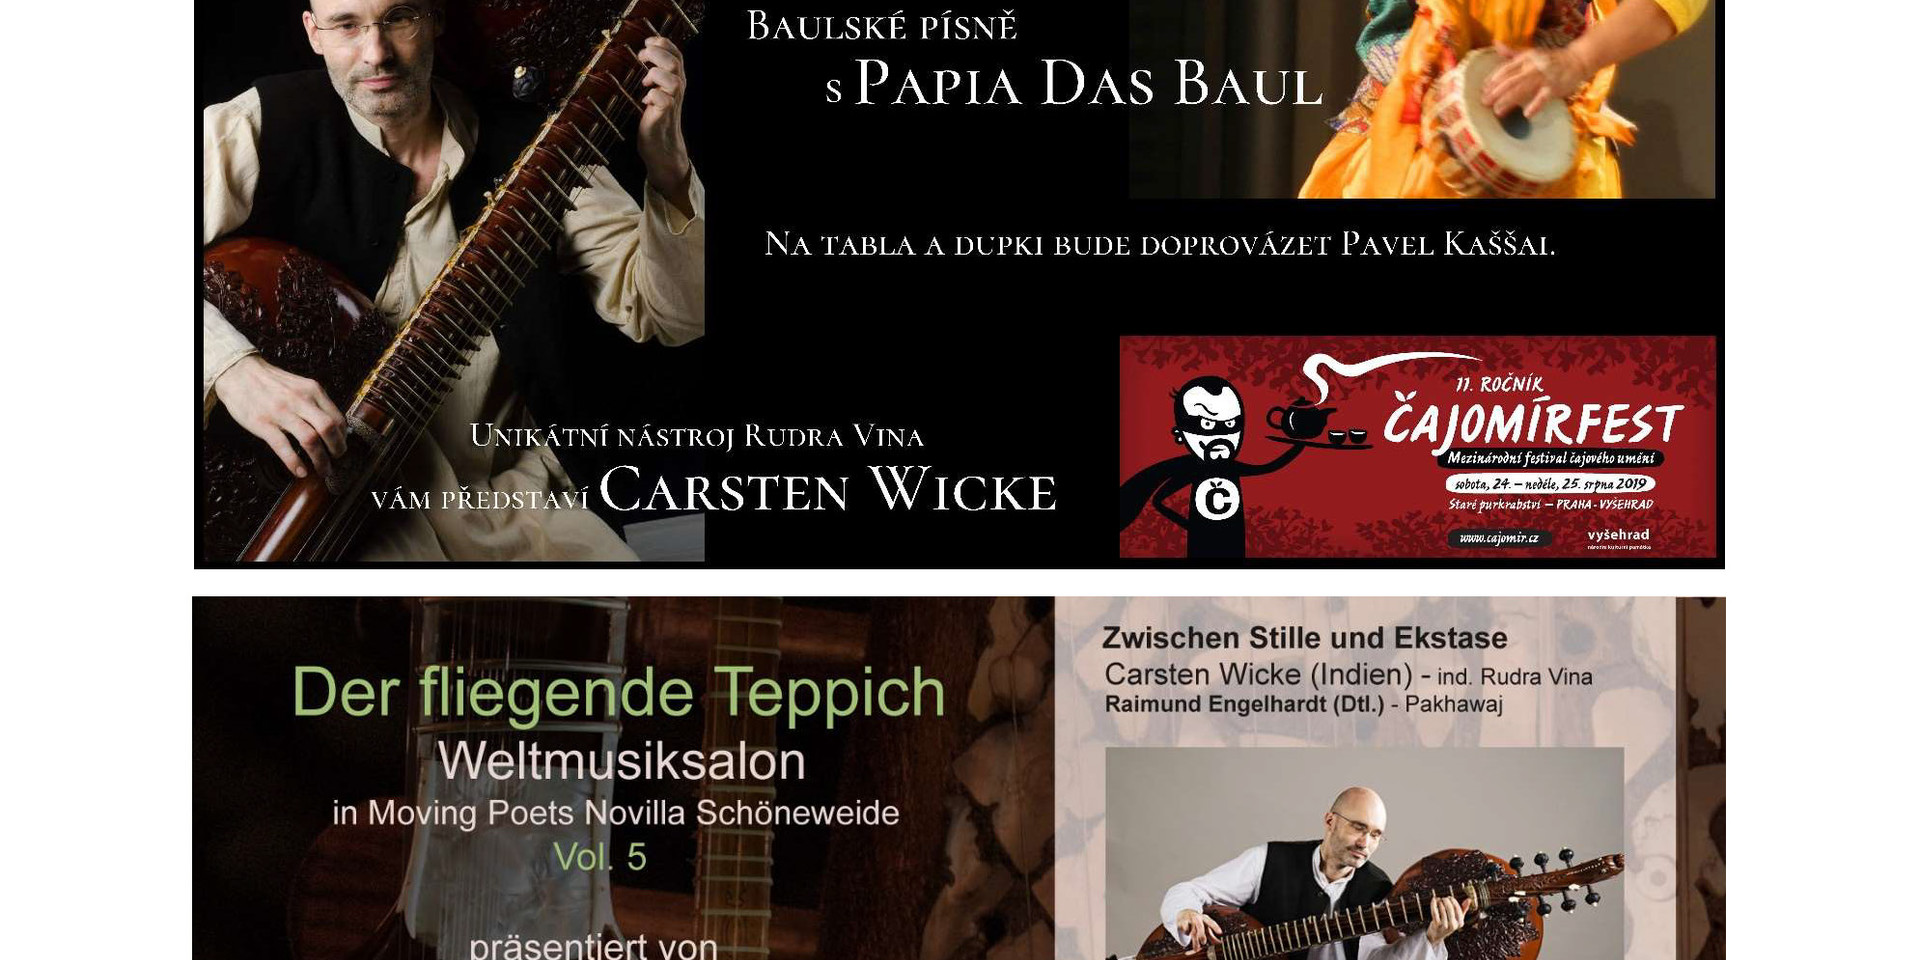 Rudra Veena Concerts in Berlin and Prague 2019